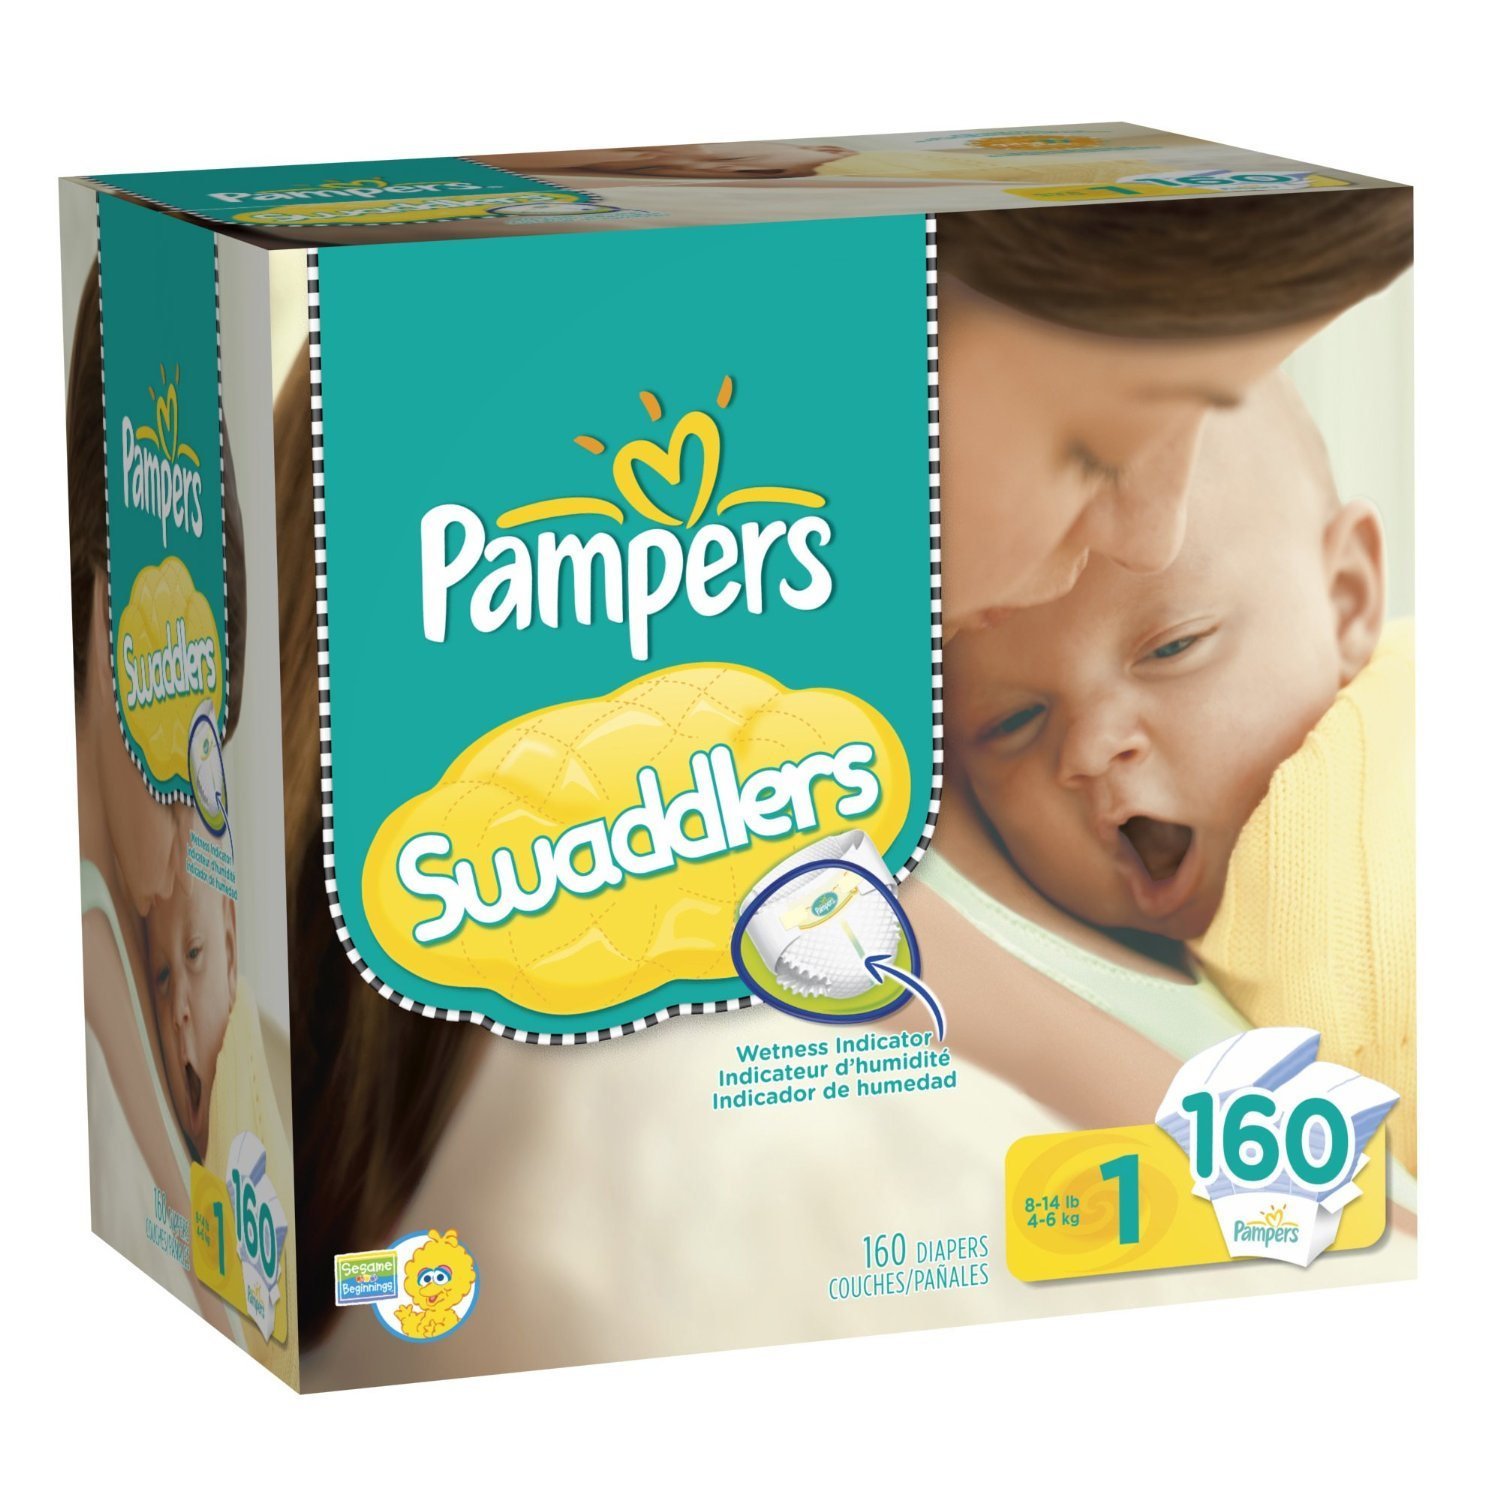 Amazon.com: Pampers Swaddlers Size 1 Baby Diapers 160 Count: Health & Personal Care